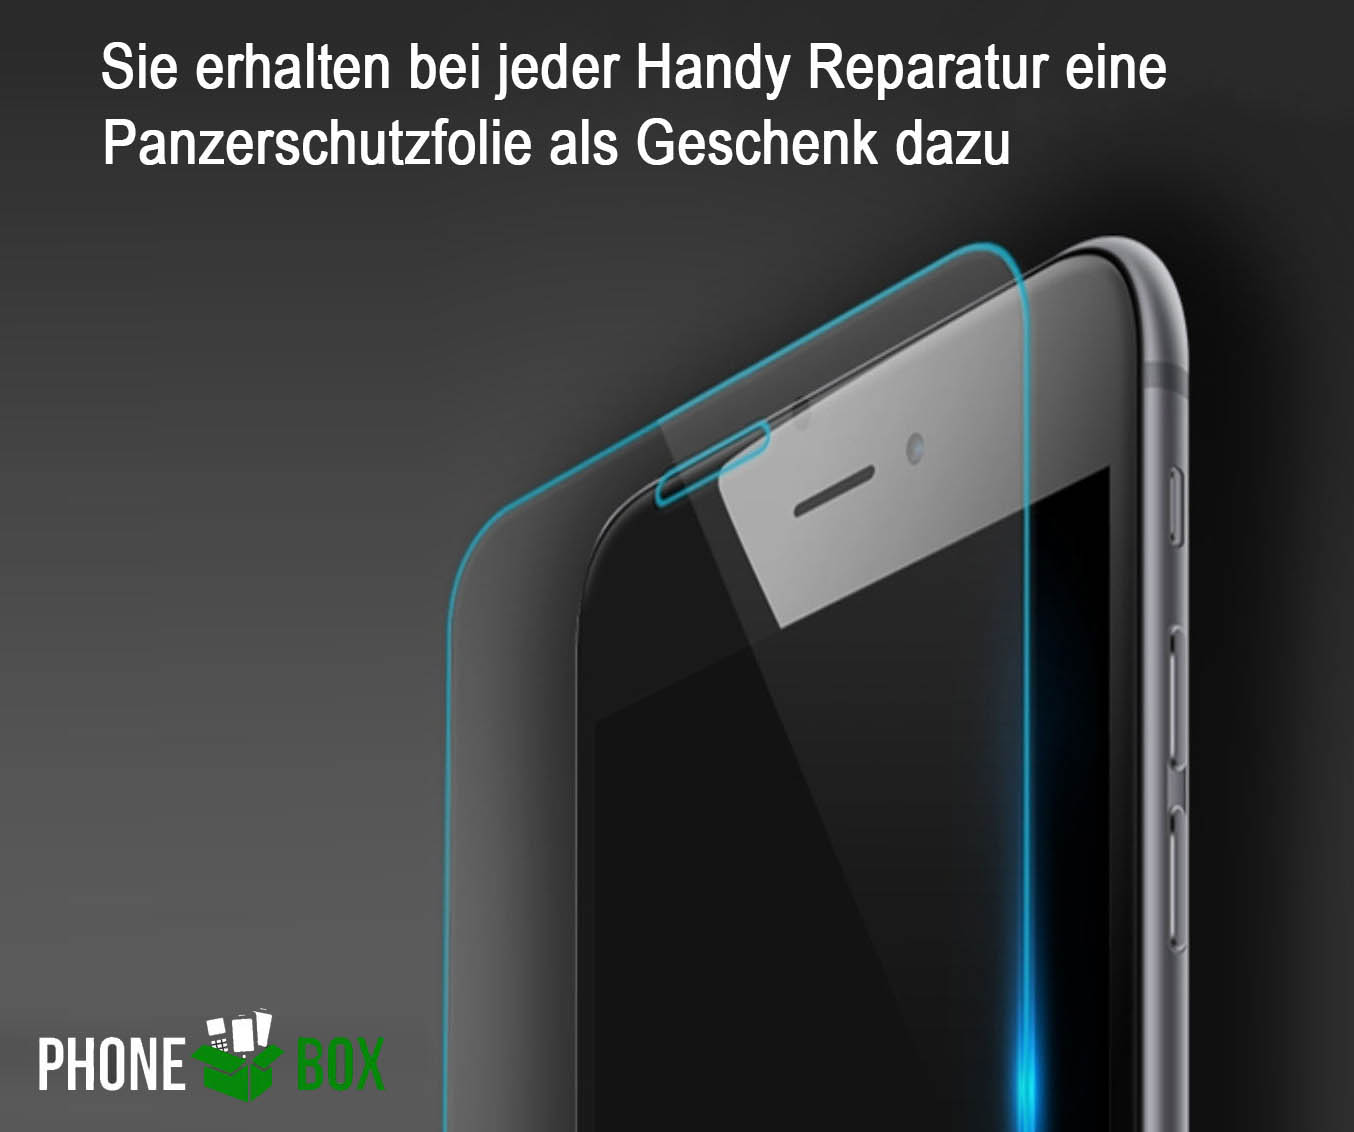 Handy-Reparatur-Pasing-Iphone